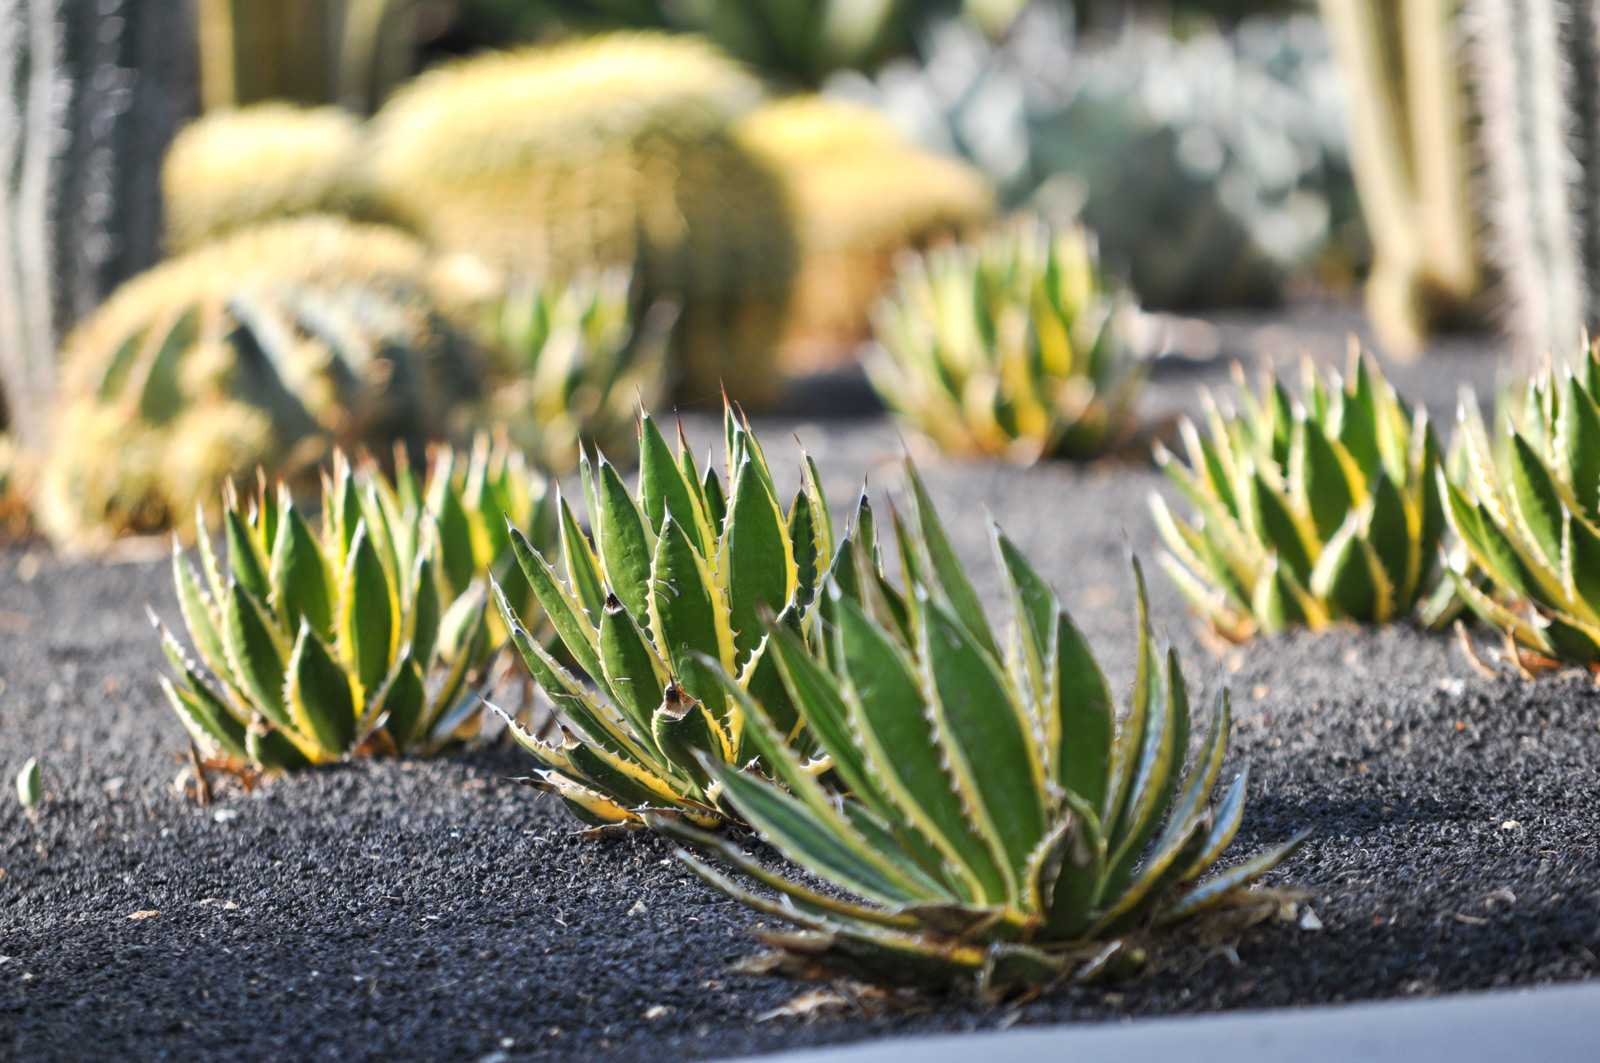 Multiple Thorn-crested Agaves in the specimen beds at Sunnylands Center and Gardens.